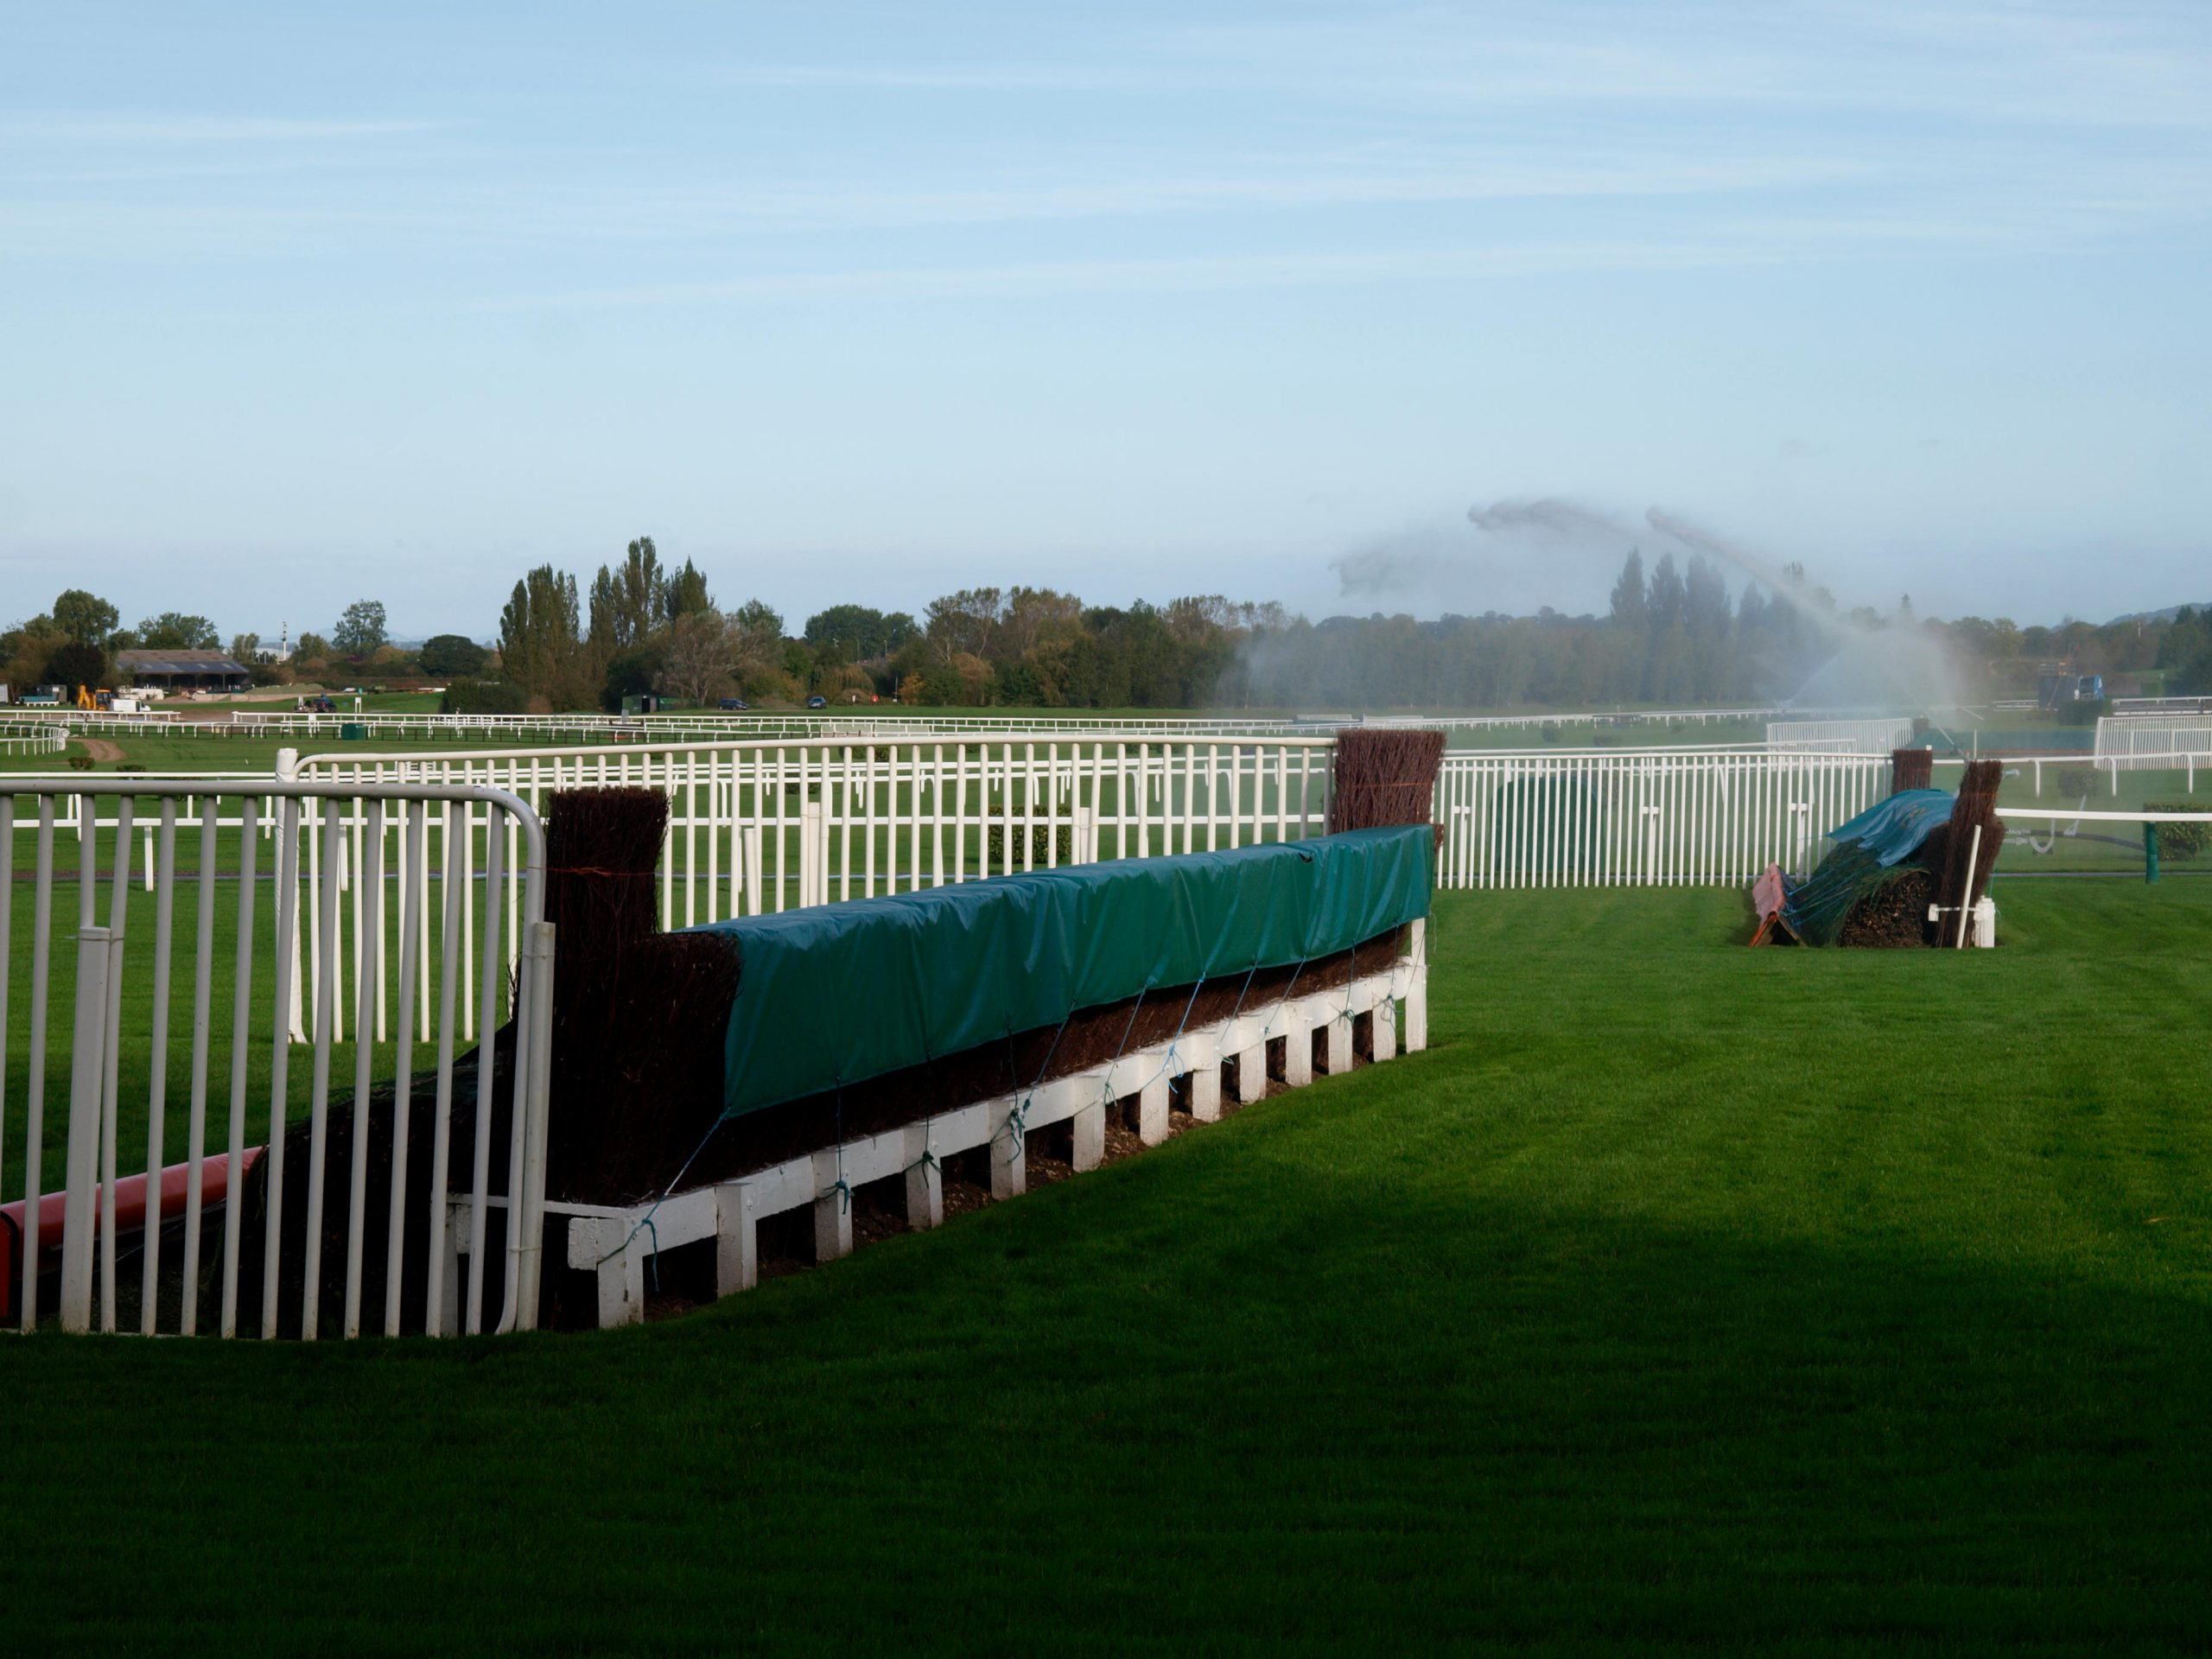 Cheltenham Racecourse, Gloucestershire, UK